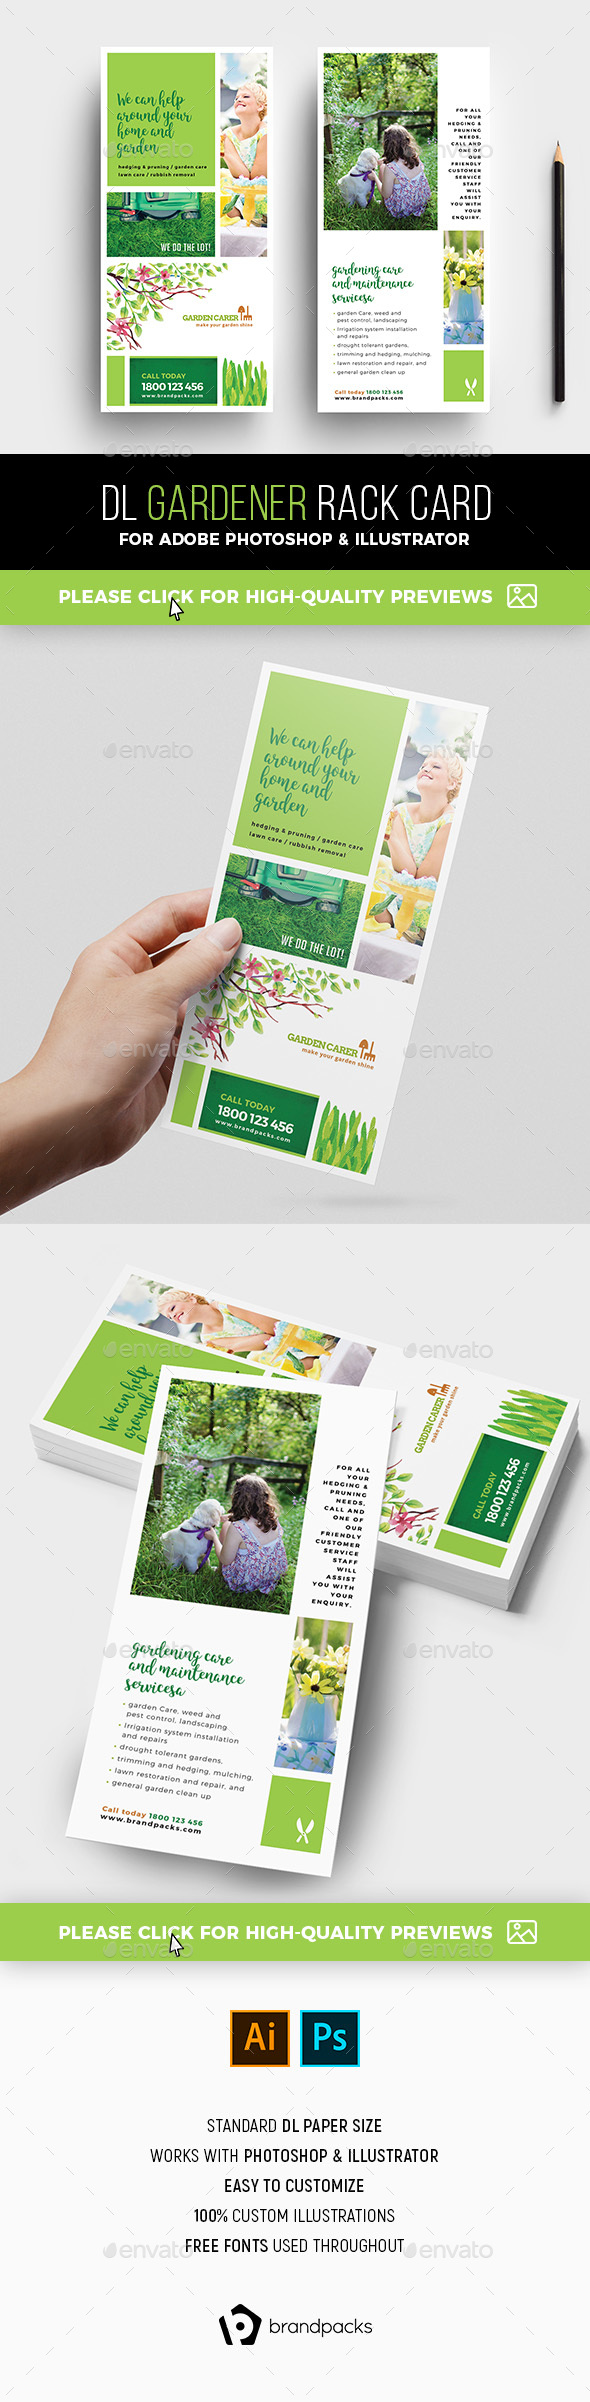 Gardener Rack Card Template - Corporate Flyers